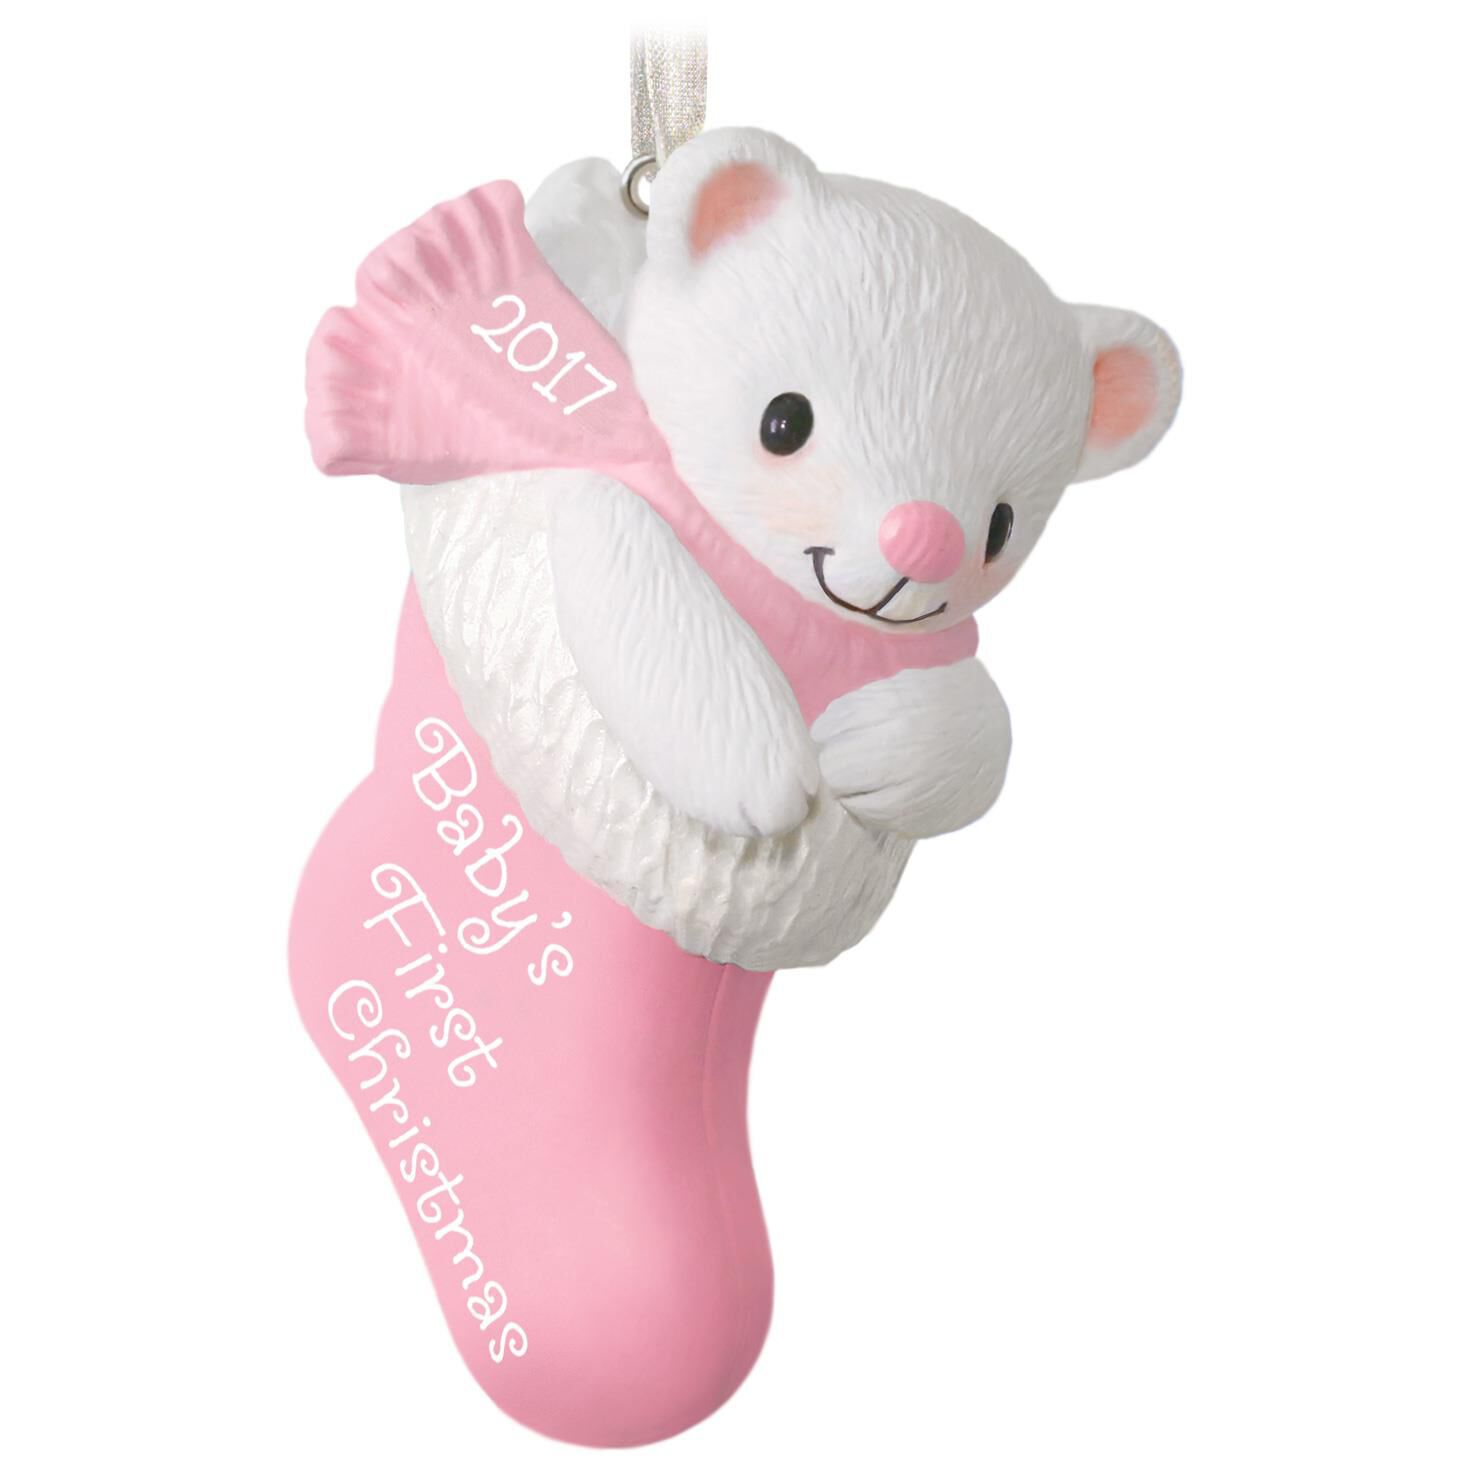 New baby ornaments - New Baby Ornaments 24